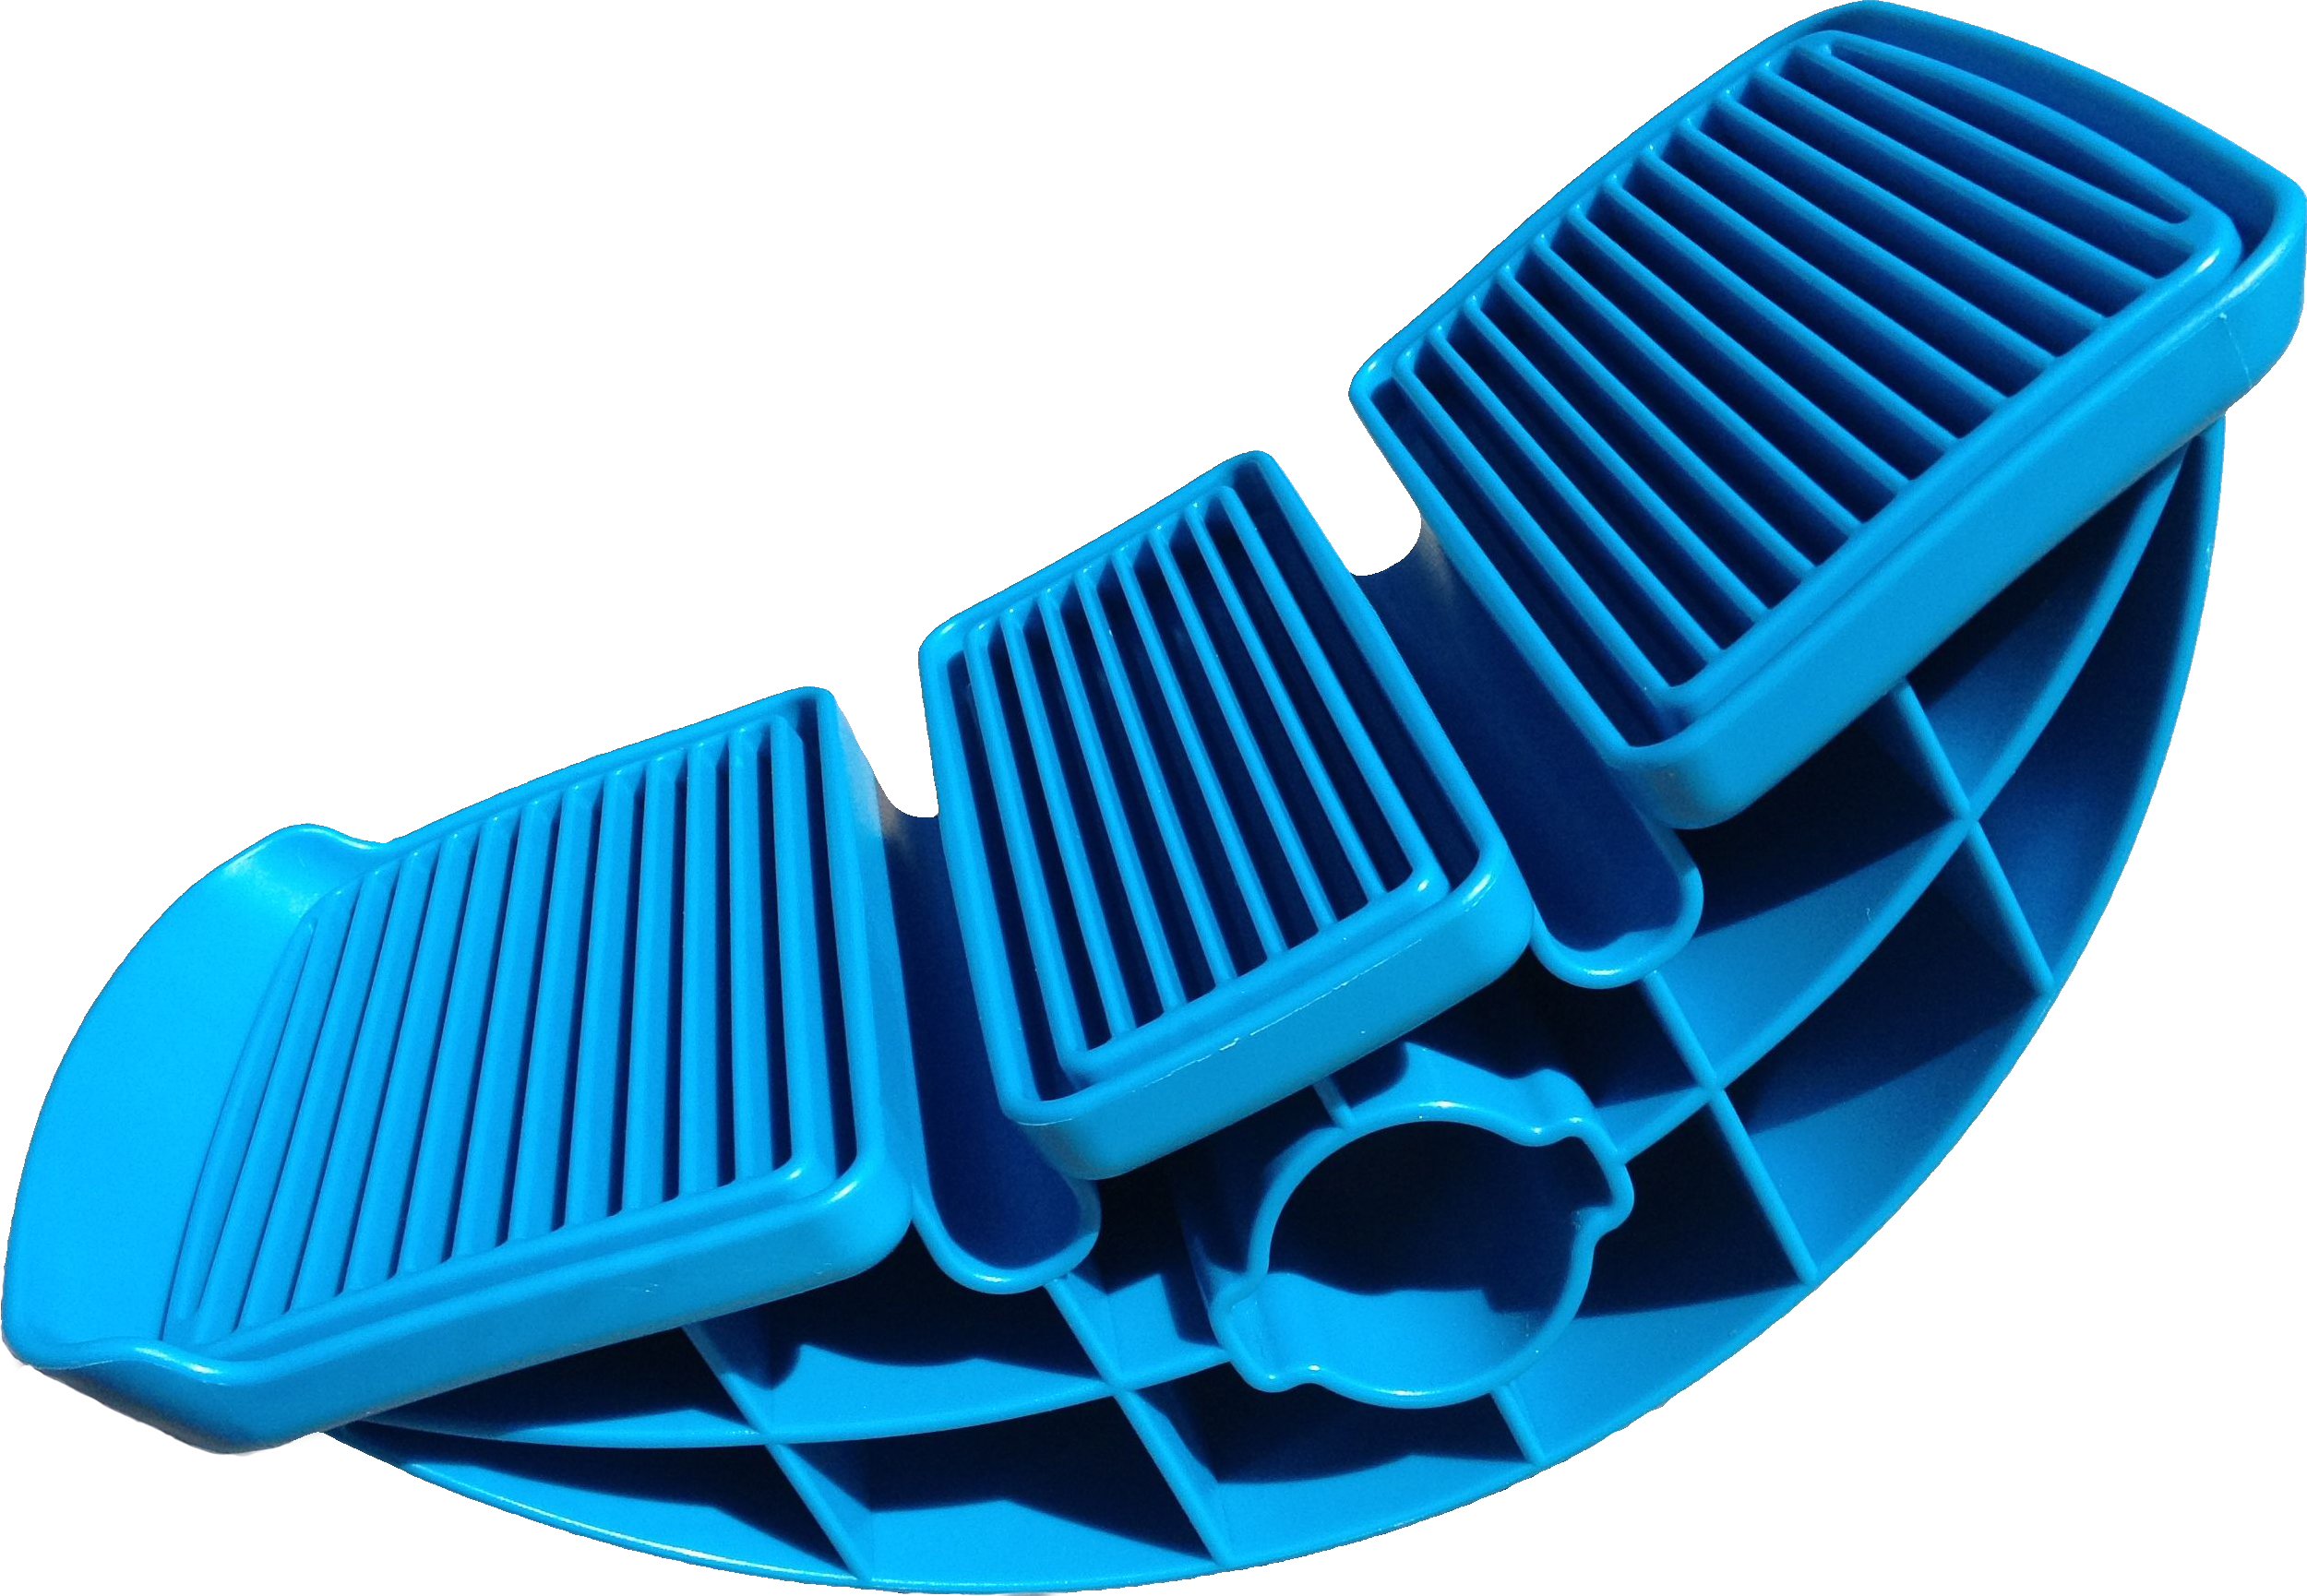 addaday type s foot stretcher